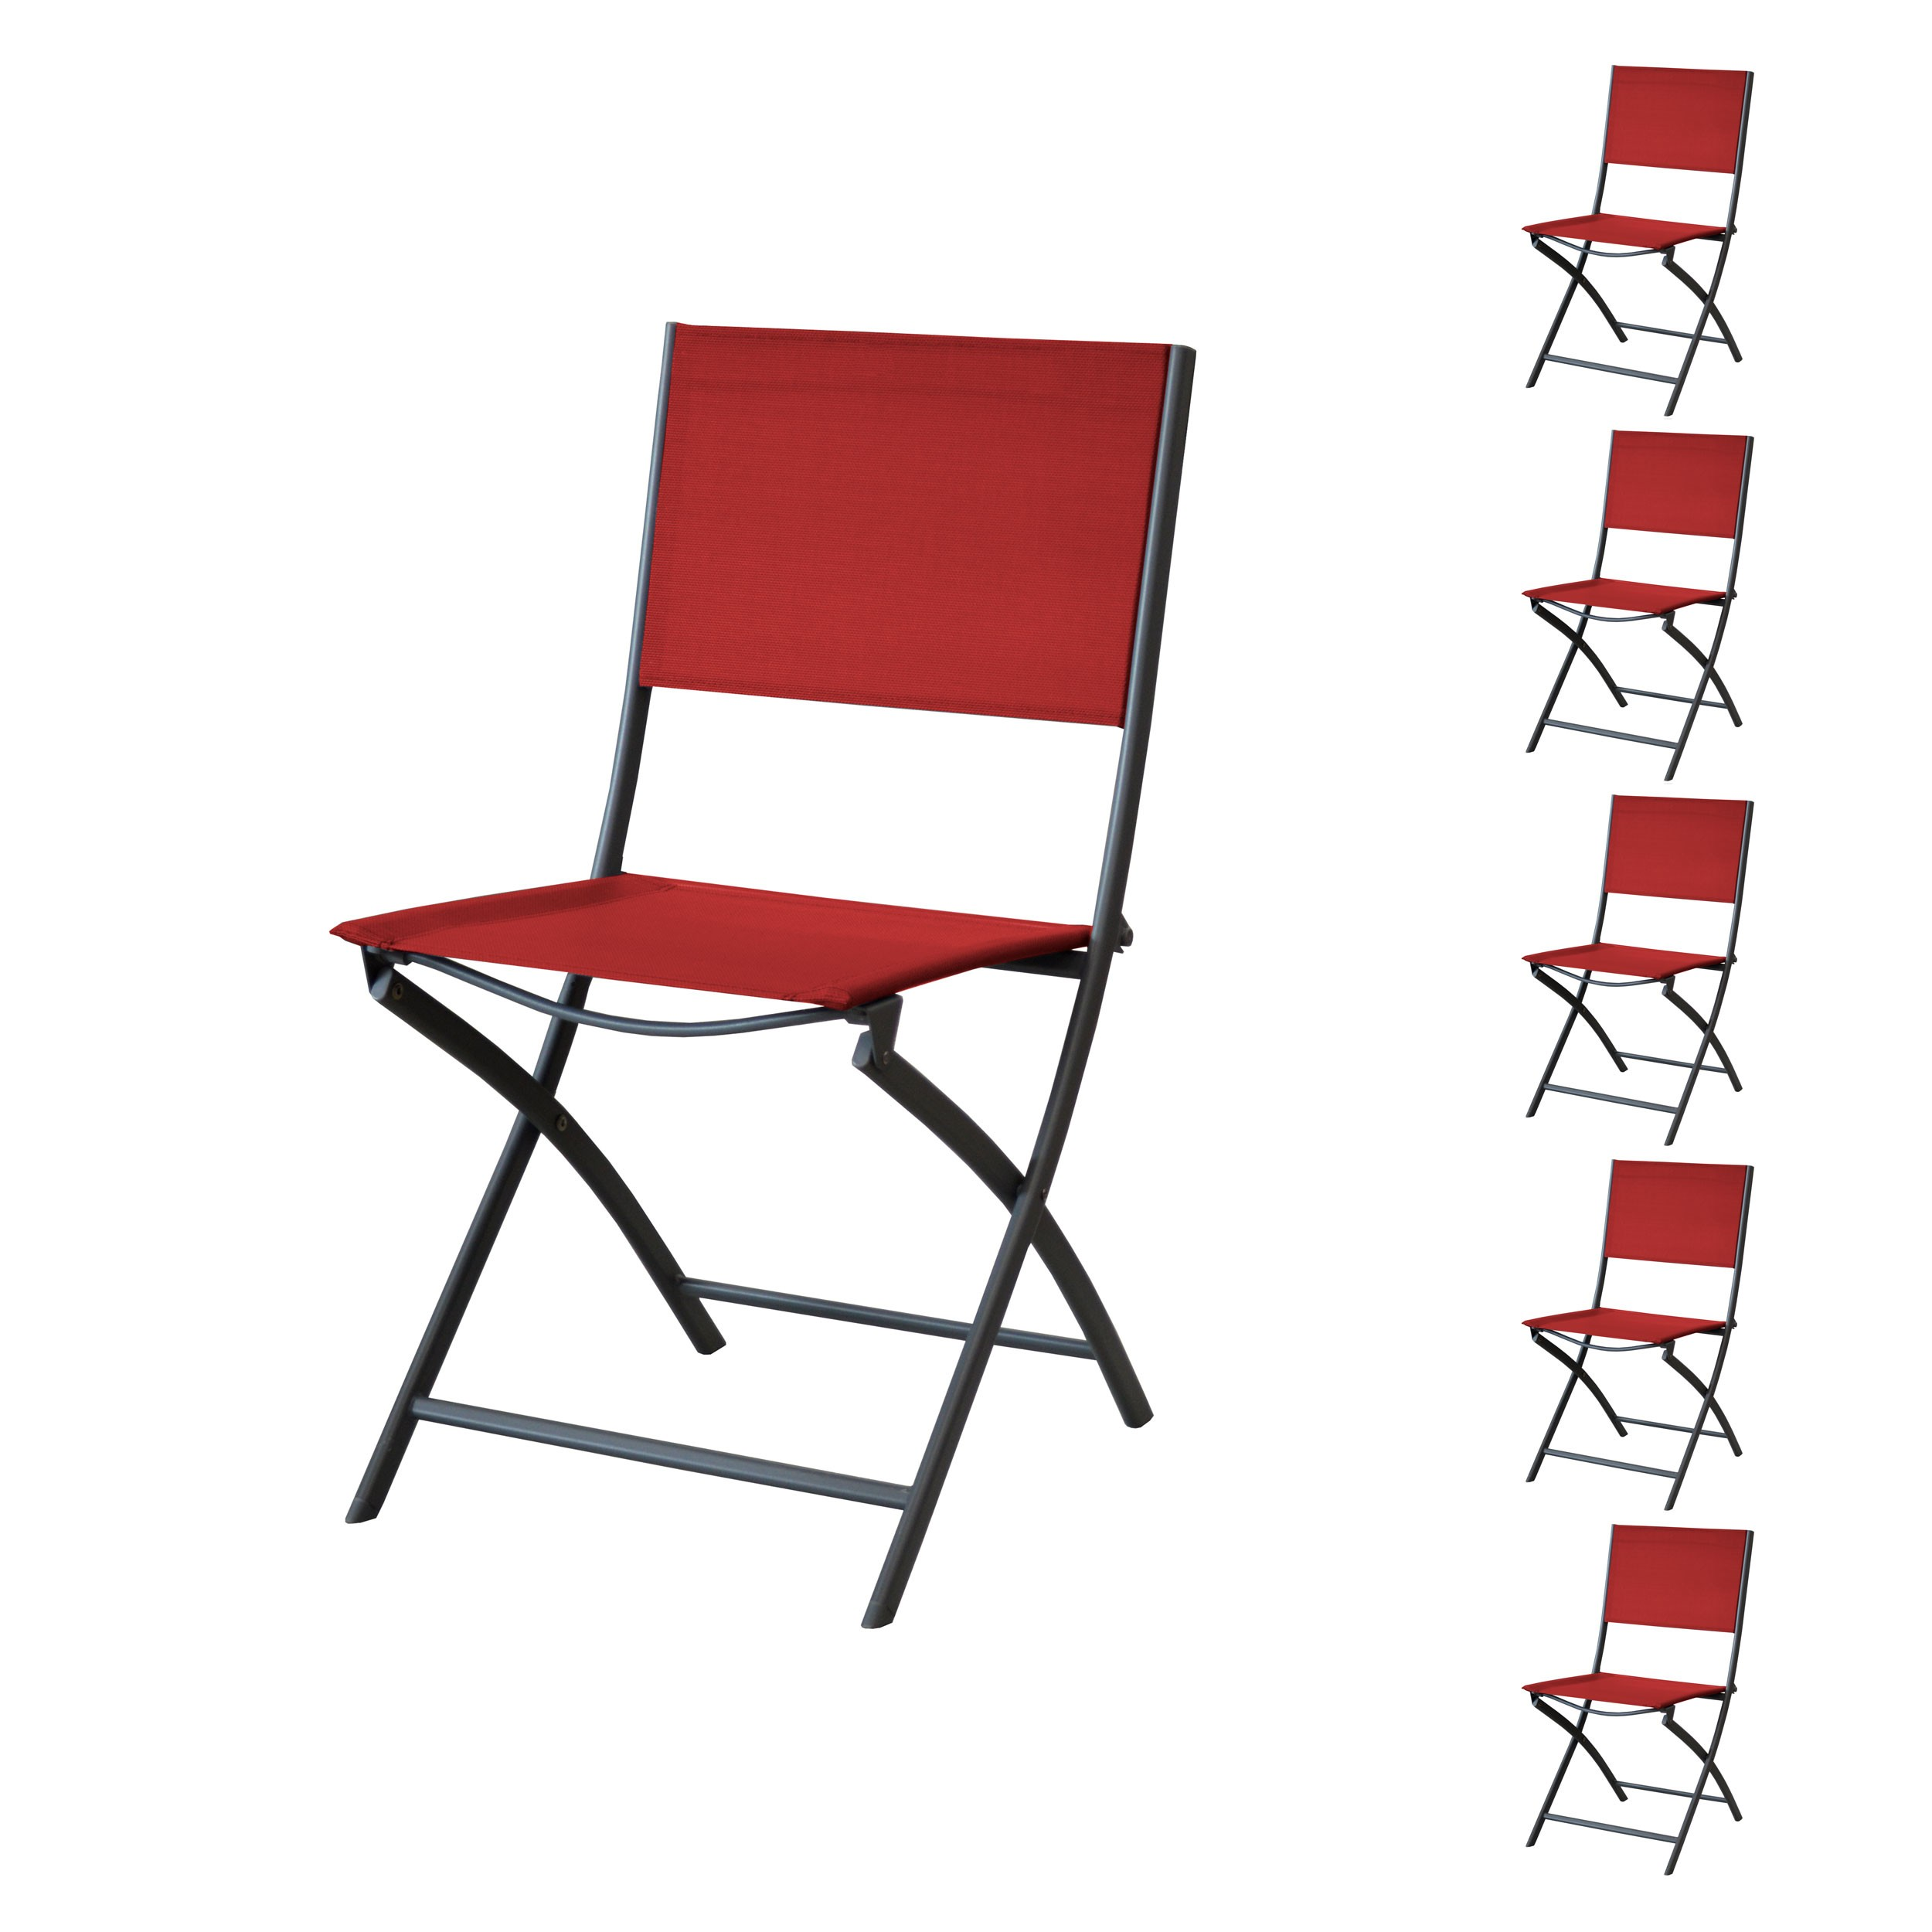 Lot 8 Chaises De Jardin Chaise De Jardin Santos Pliable Rouge Lot De 6